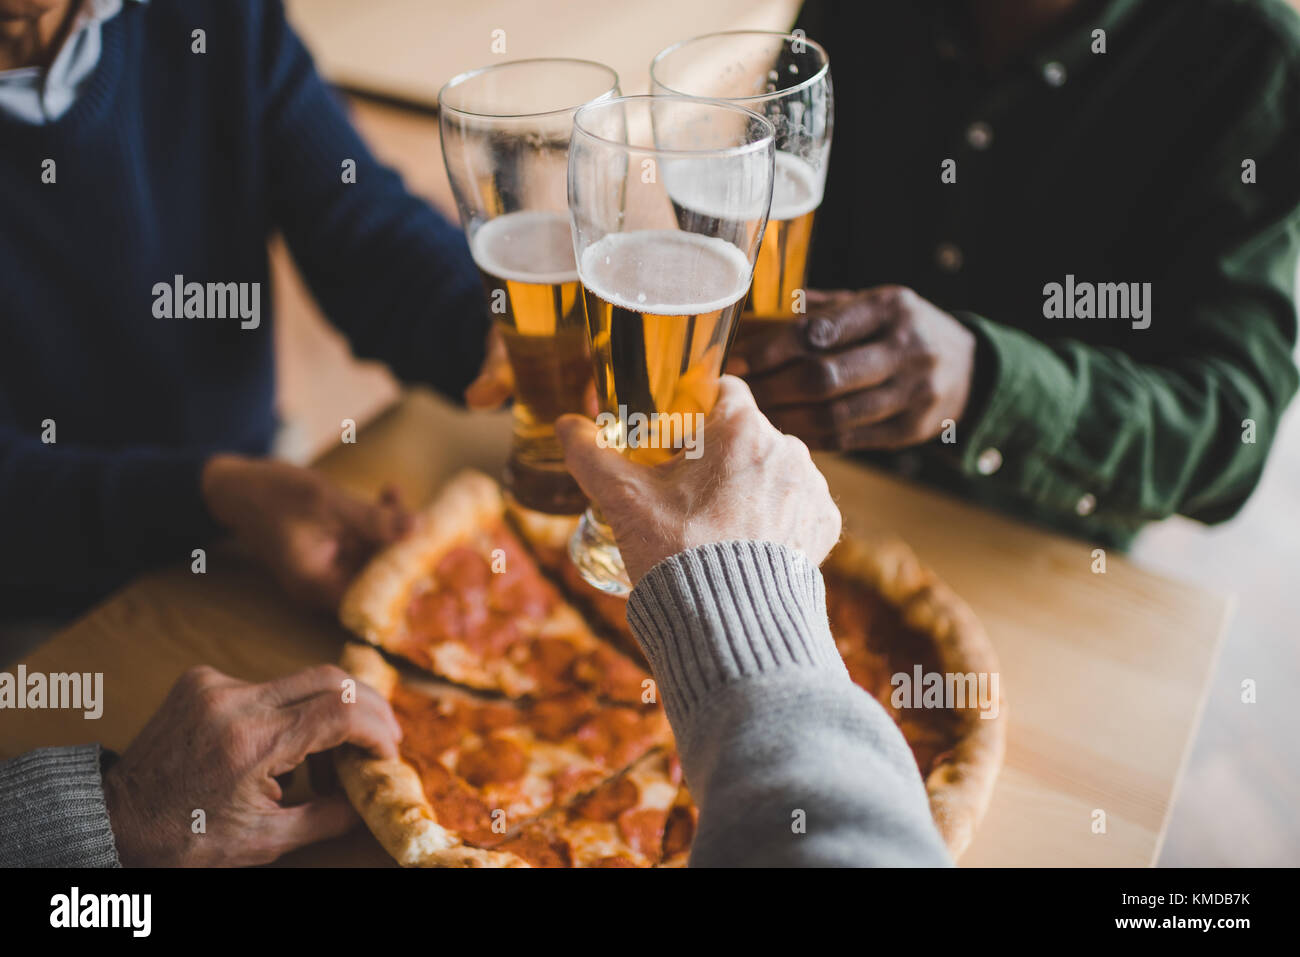 friends clinking glasses of beer - Stock Image